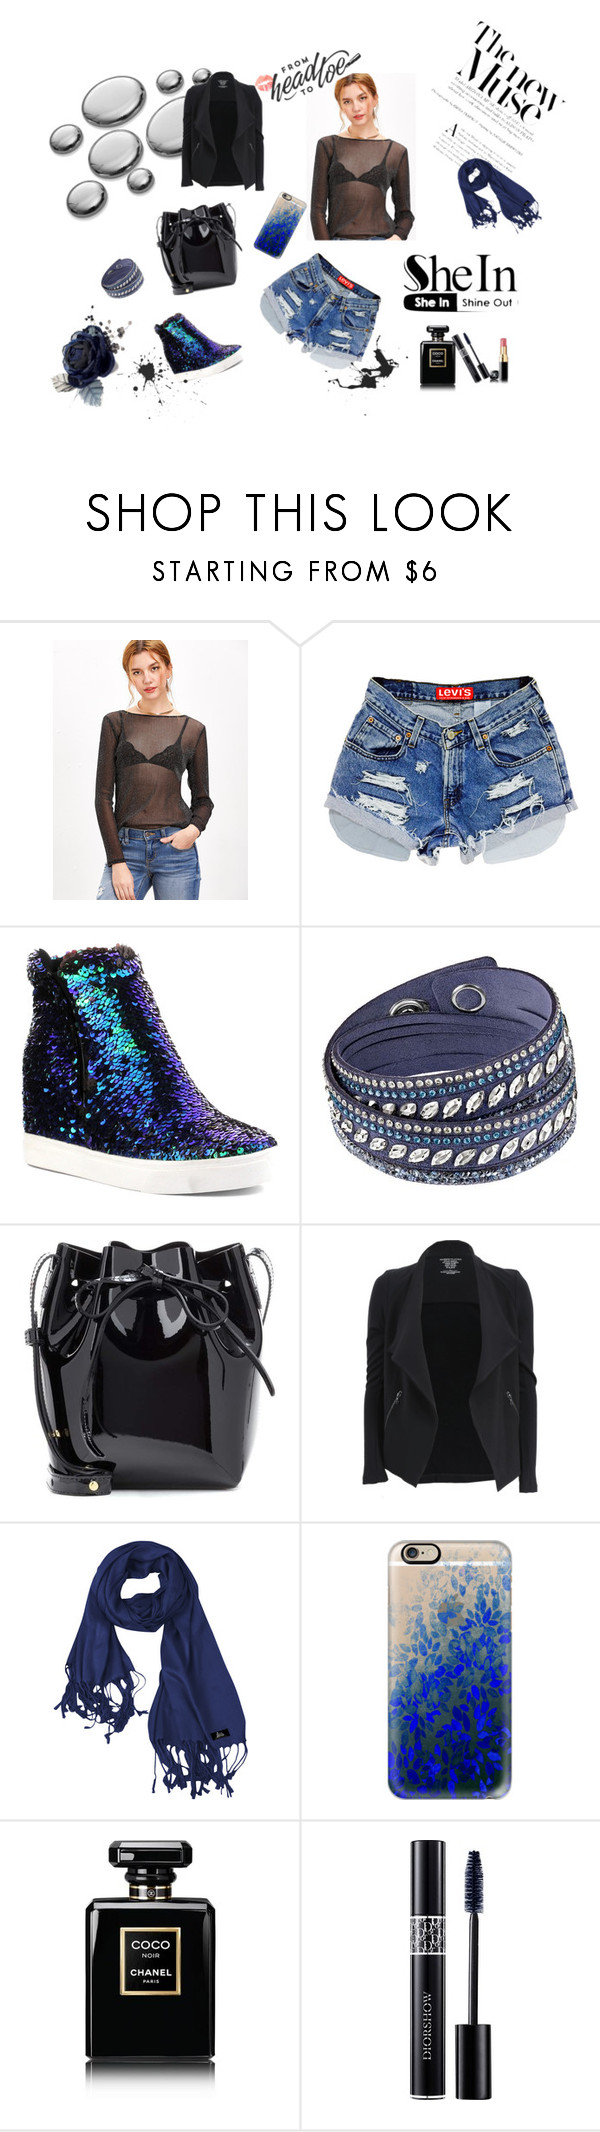 """""""Black sheer sparkle top-SheIn"""" by lamija2015 ❤ liked on Polyvore featuring Cape Robbin, Swarovski, Mansur Gavriel, Majestic Filatures, Casetify, Chanel and Christian Dior"""